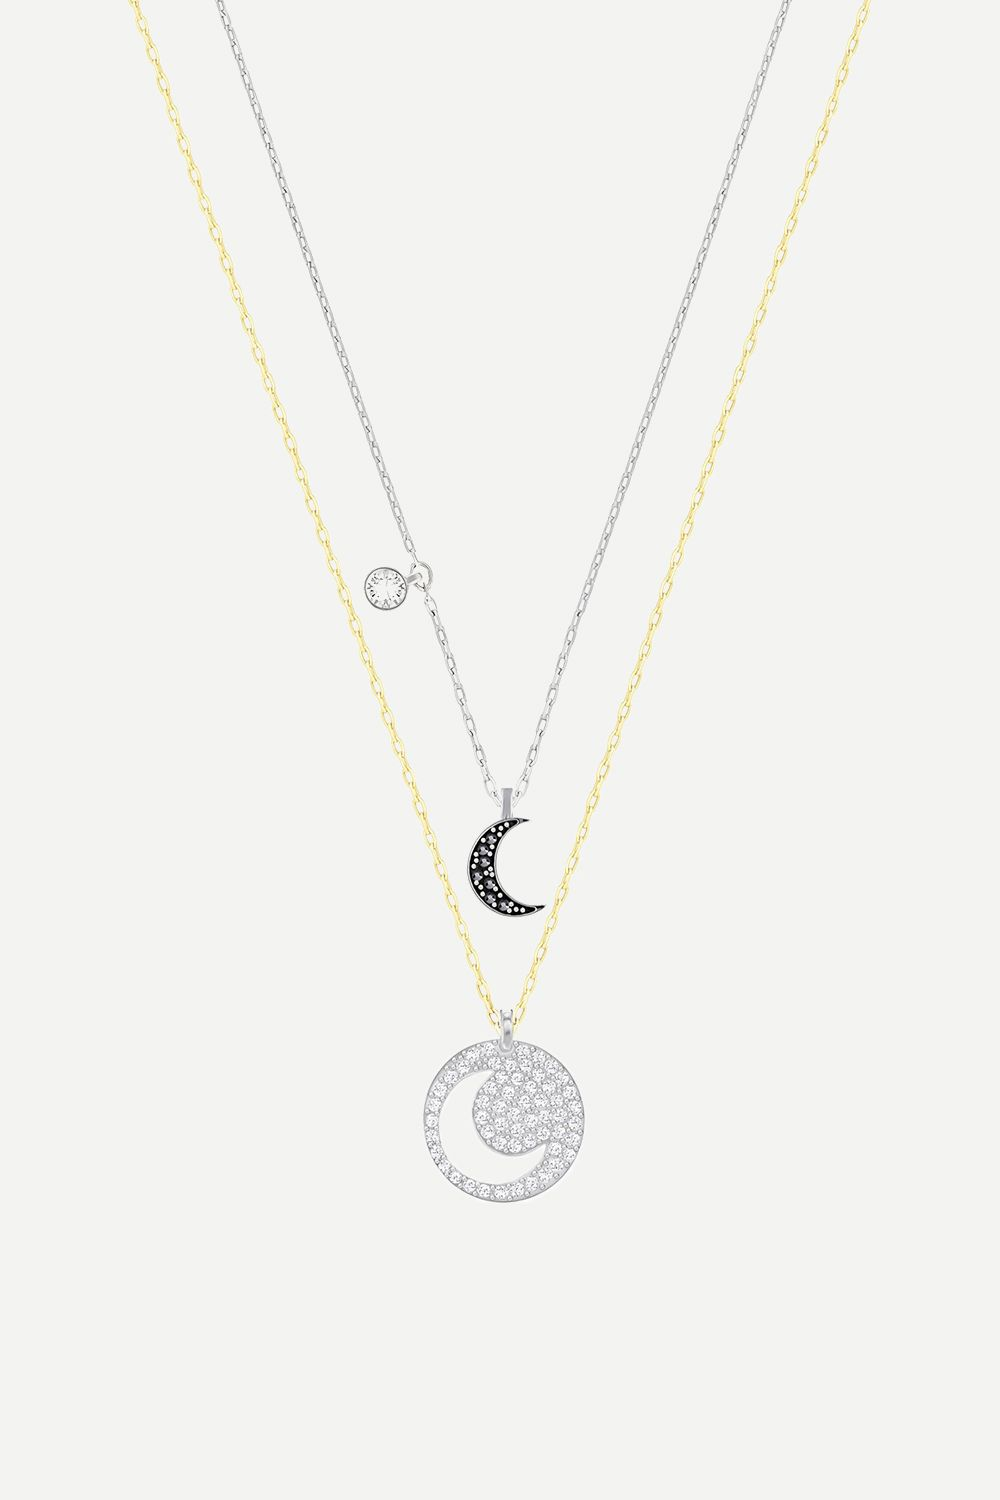 """<p>These layered pendant necklaces can be worn separate or together, for three&nbsp&#x3B;looks in one. </p><p>Swarovski crystal wishes moon set, $119&#x3B; <a href=""""https://www.swarovski.com/Web_US/en/5272242/product/Crystal_Wishes_Moon_Pendant_Set,_Black.html"""" target=""""_blank"""" data-tracking-id=""""recirc-text-link"""">swarovski.com</a></p>"""